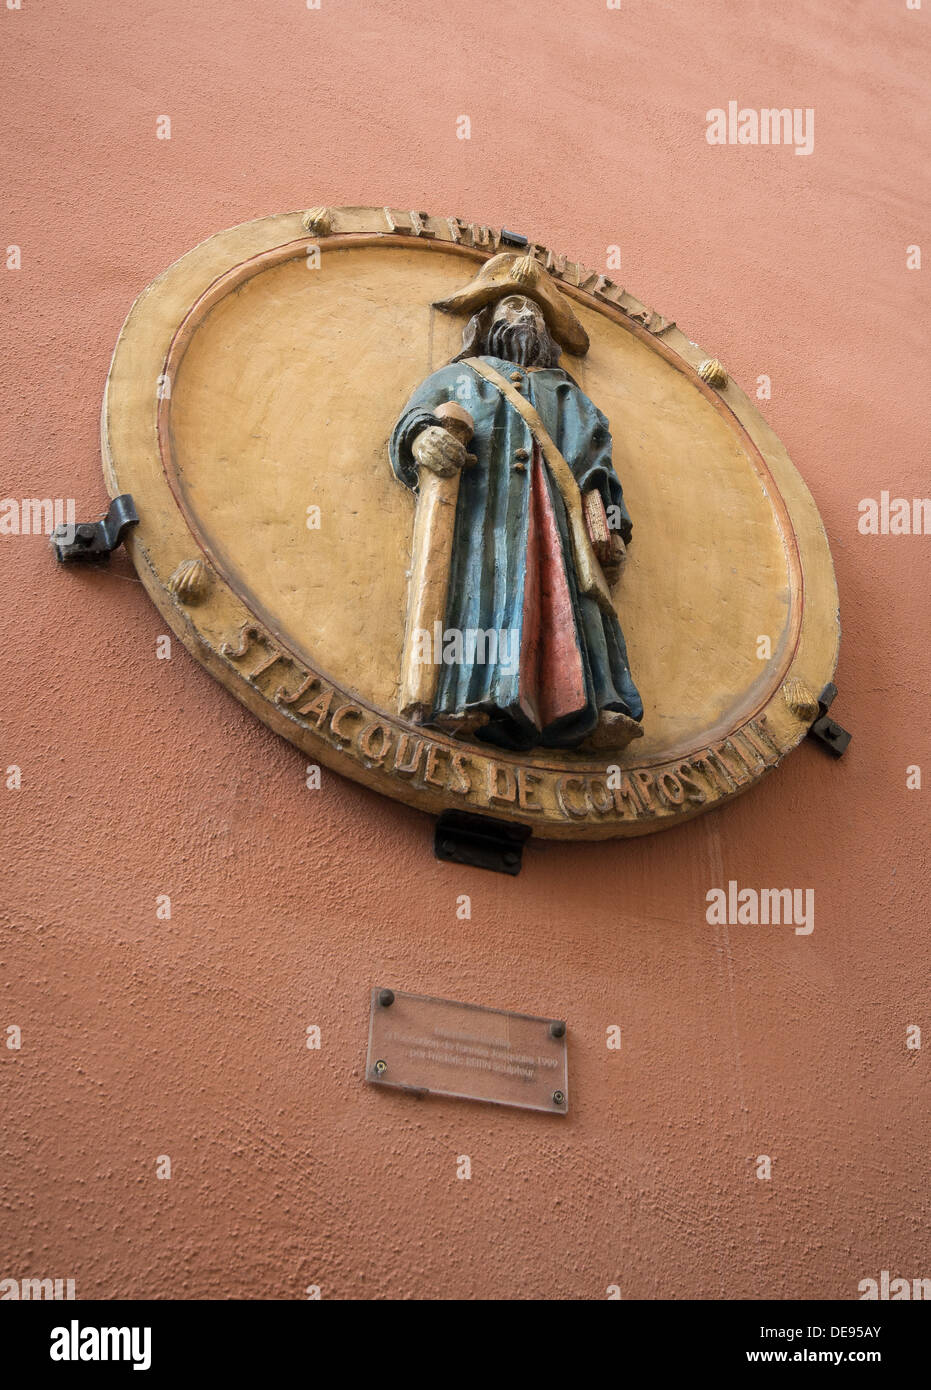 A plaque of St James the pilgrim in niche above shop on the GR65 the Way of St James in Le Puy-en-Velay, France - Stock Image